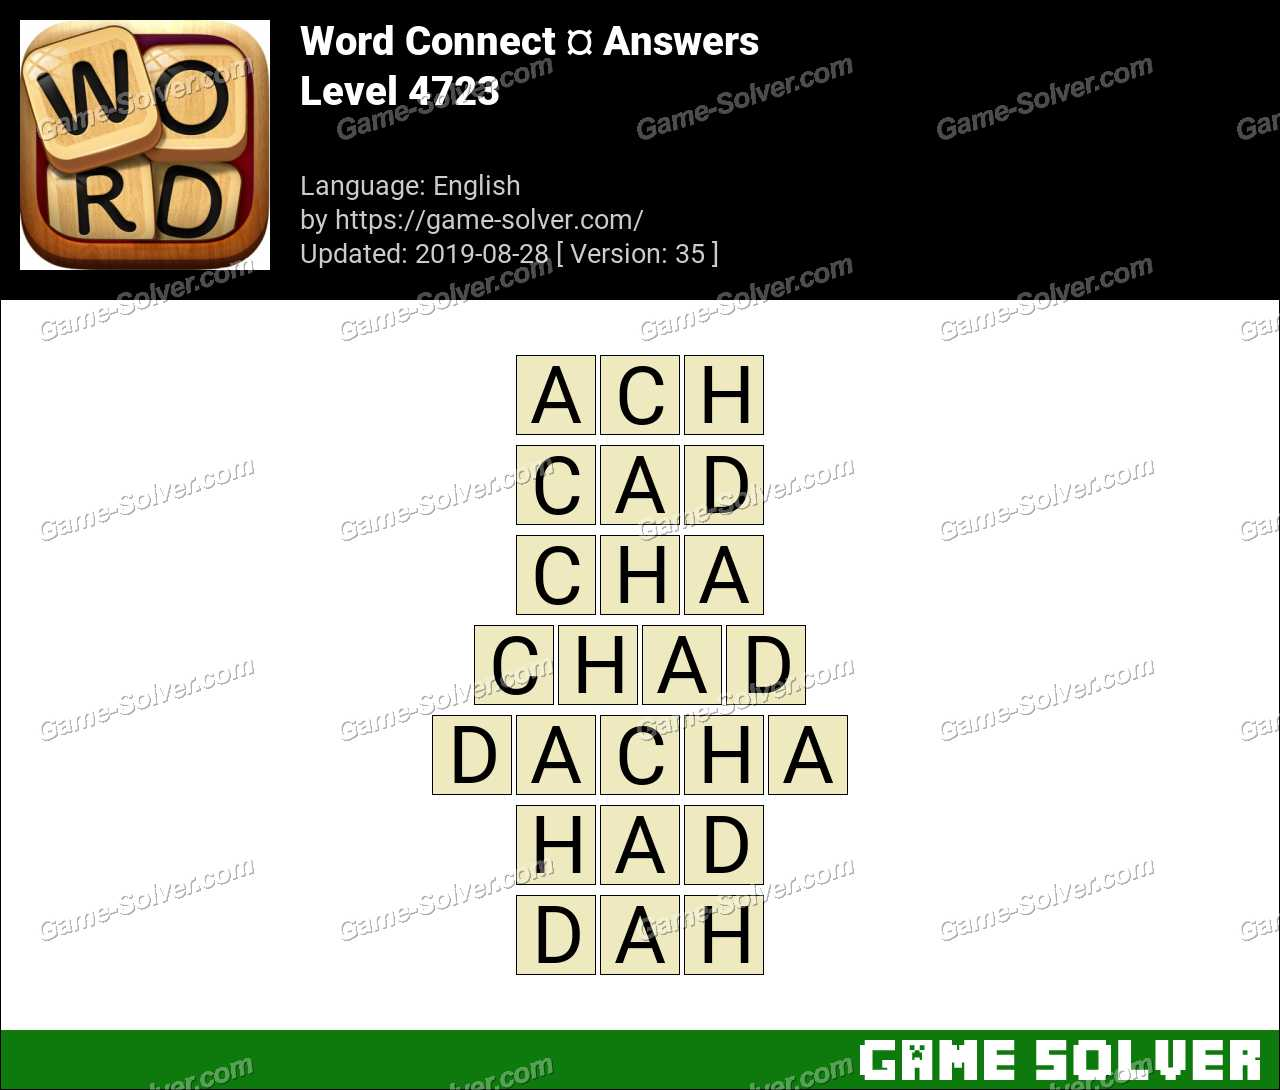 Word Connect Level 4723 Answers